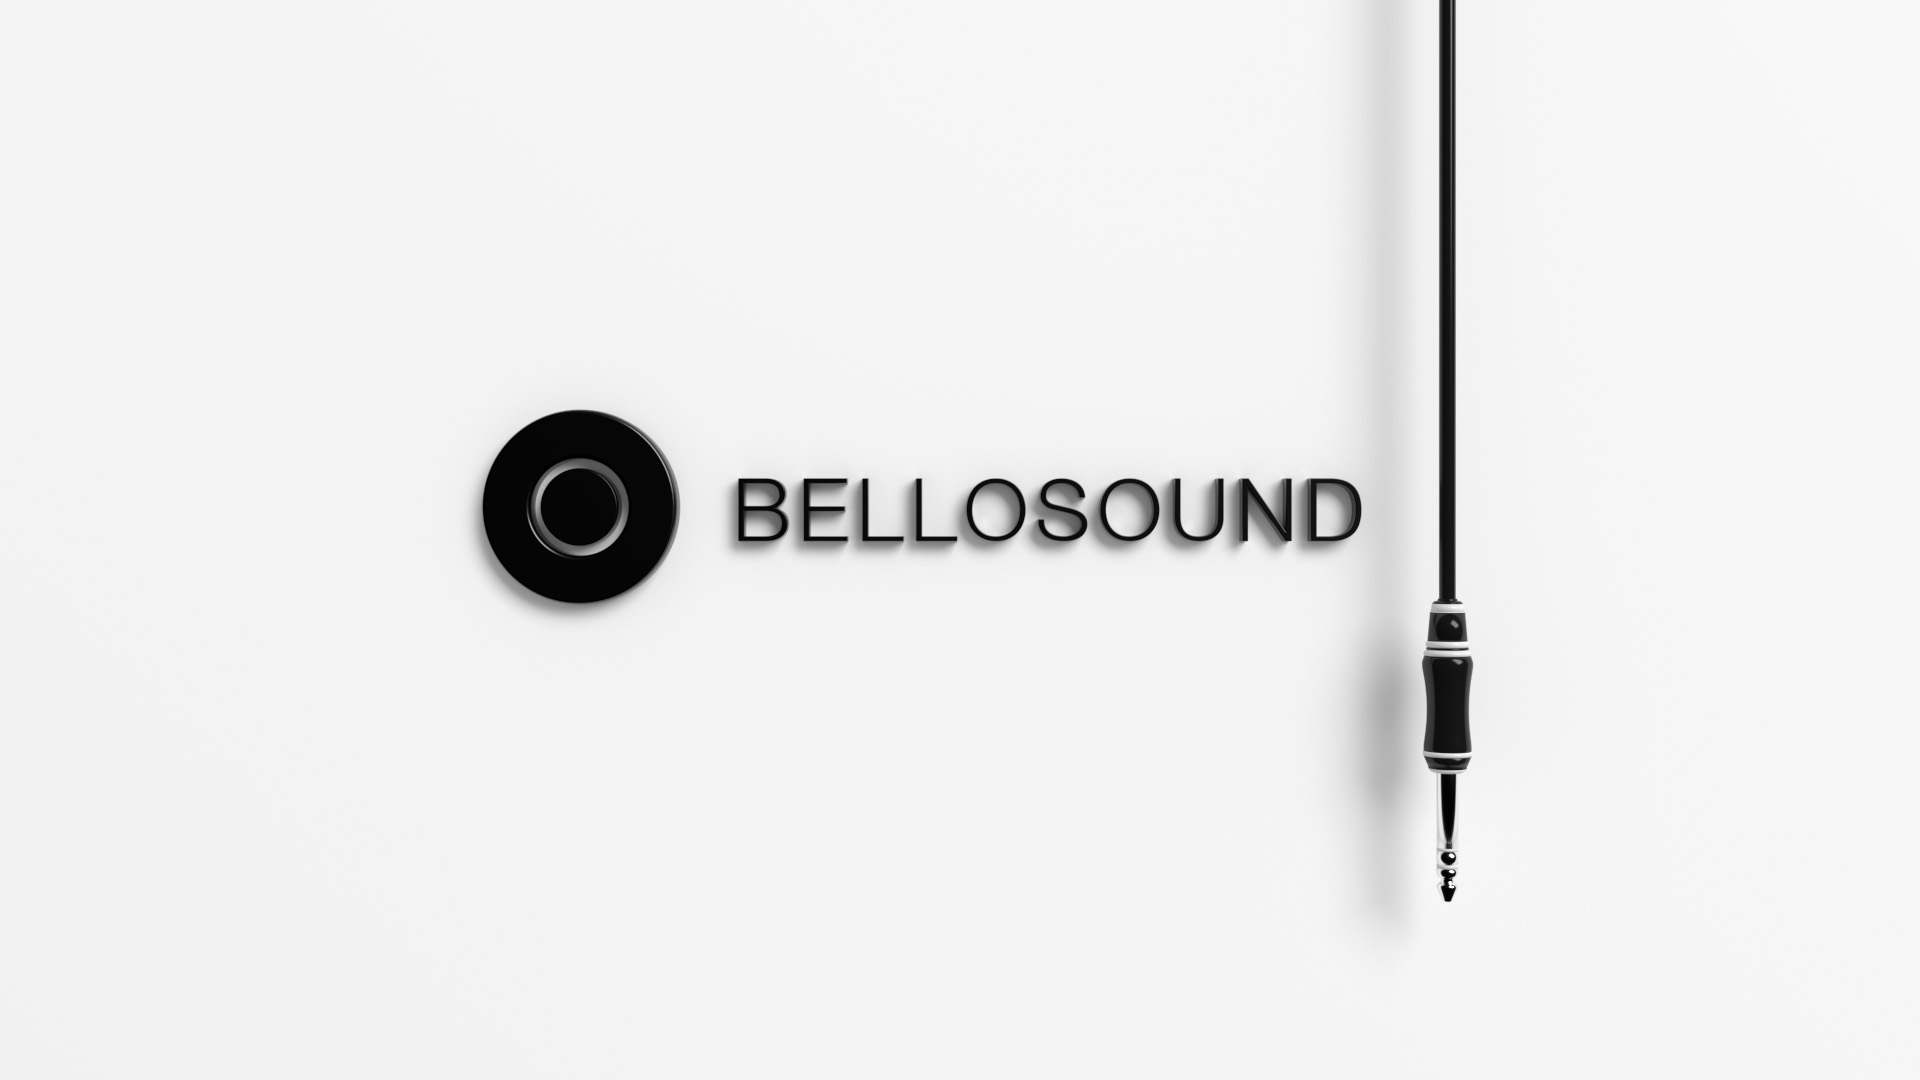 bellosound_lovewhatyouhear_image01